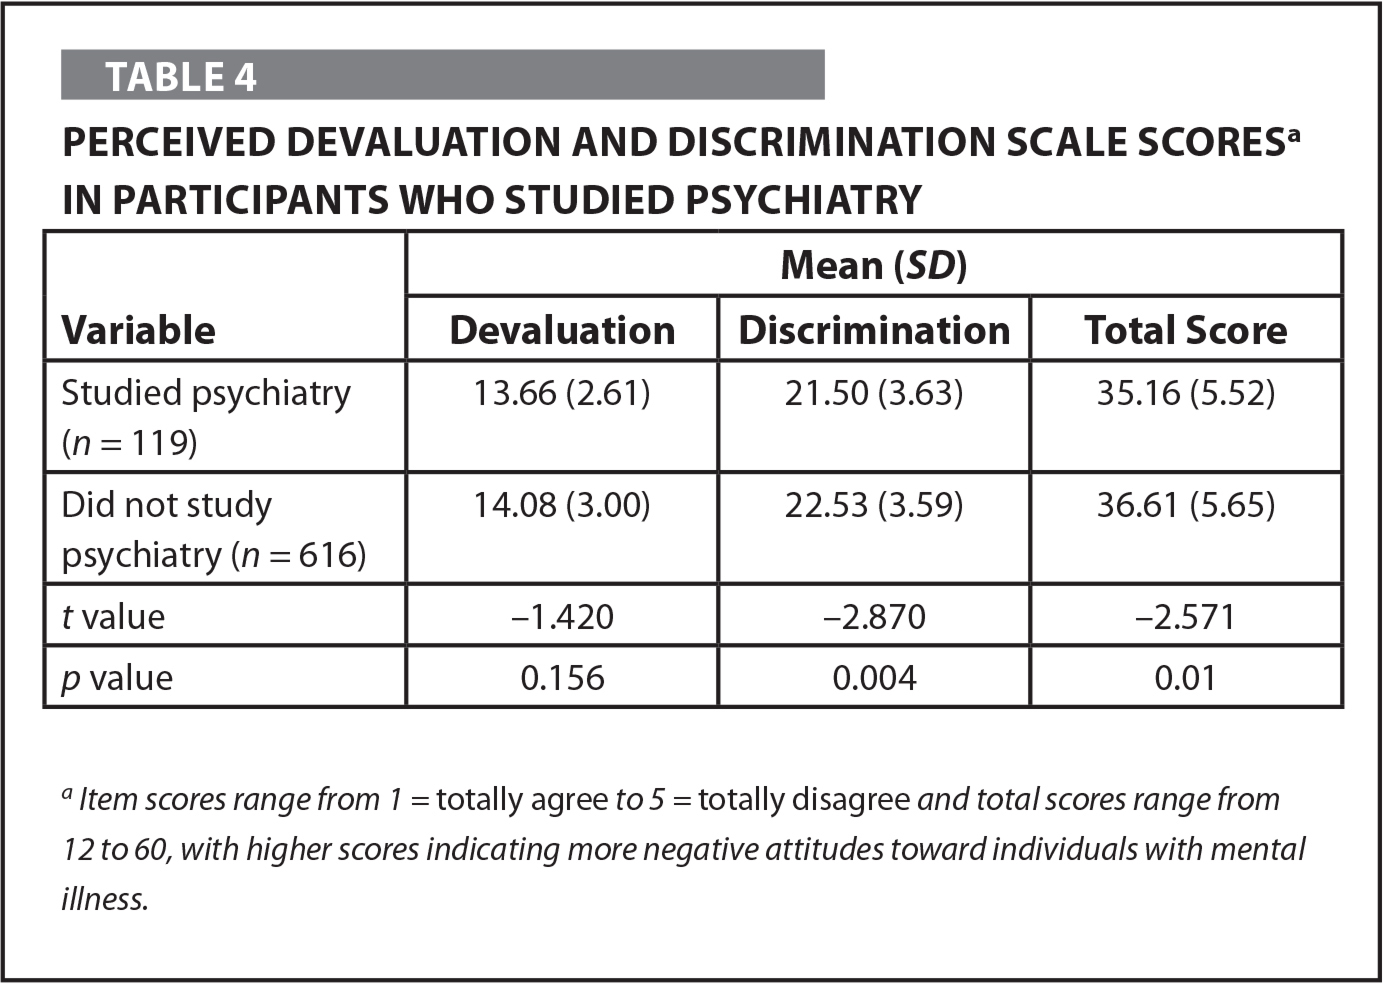 Perceived Devaluation and Discrimination Scale Scoresa in Participants Who Studied Psychiatry